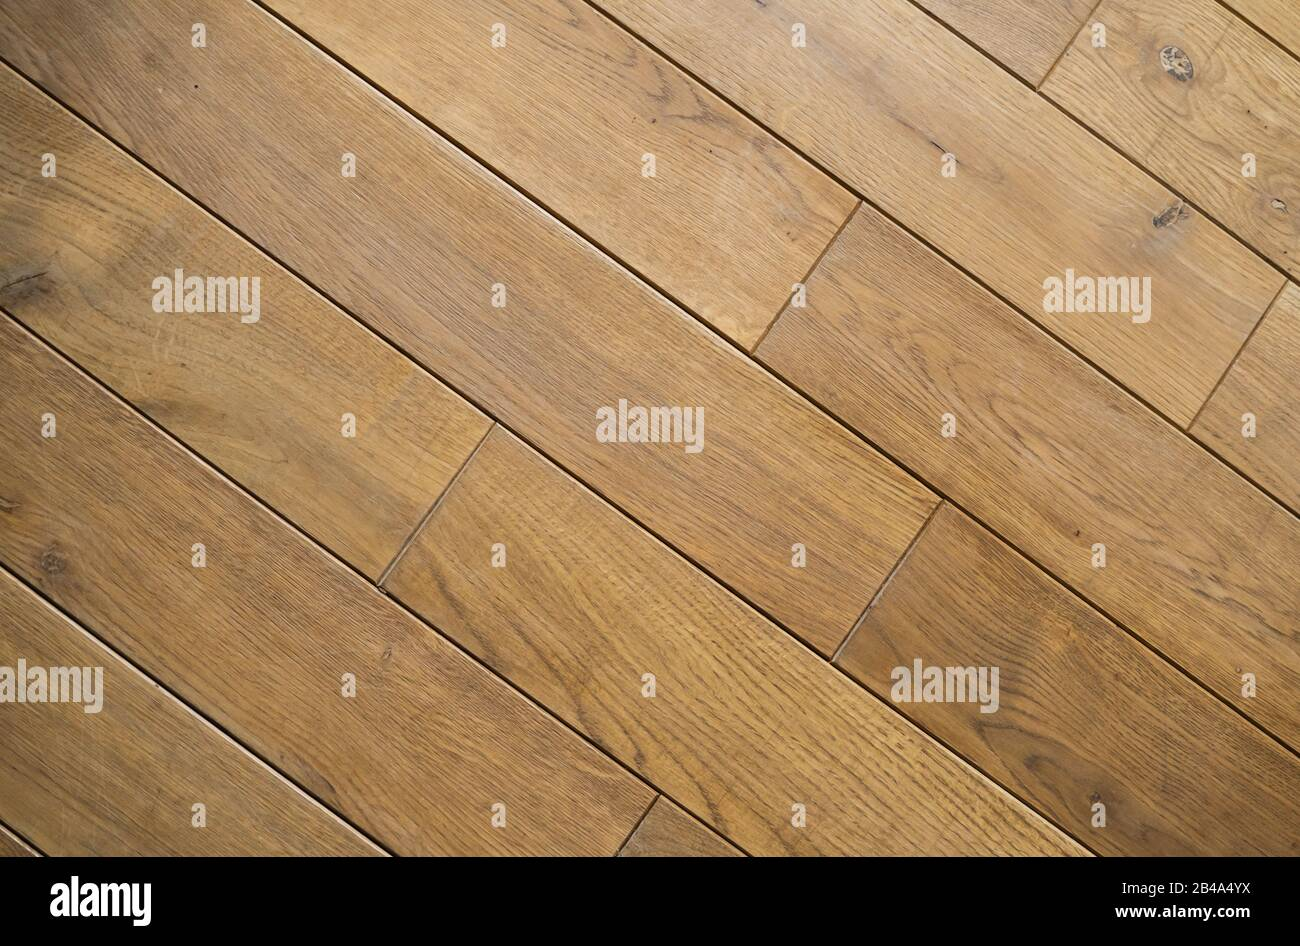 Ceramic Tile With A Wood Texture On A Kitchen Or Living Room Stock Photo Alamy